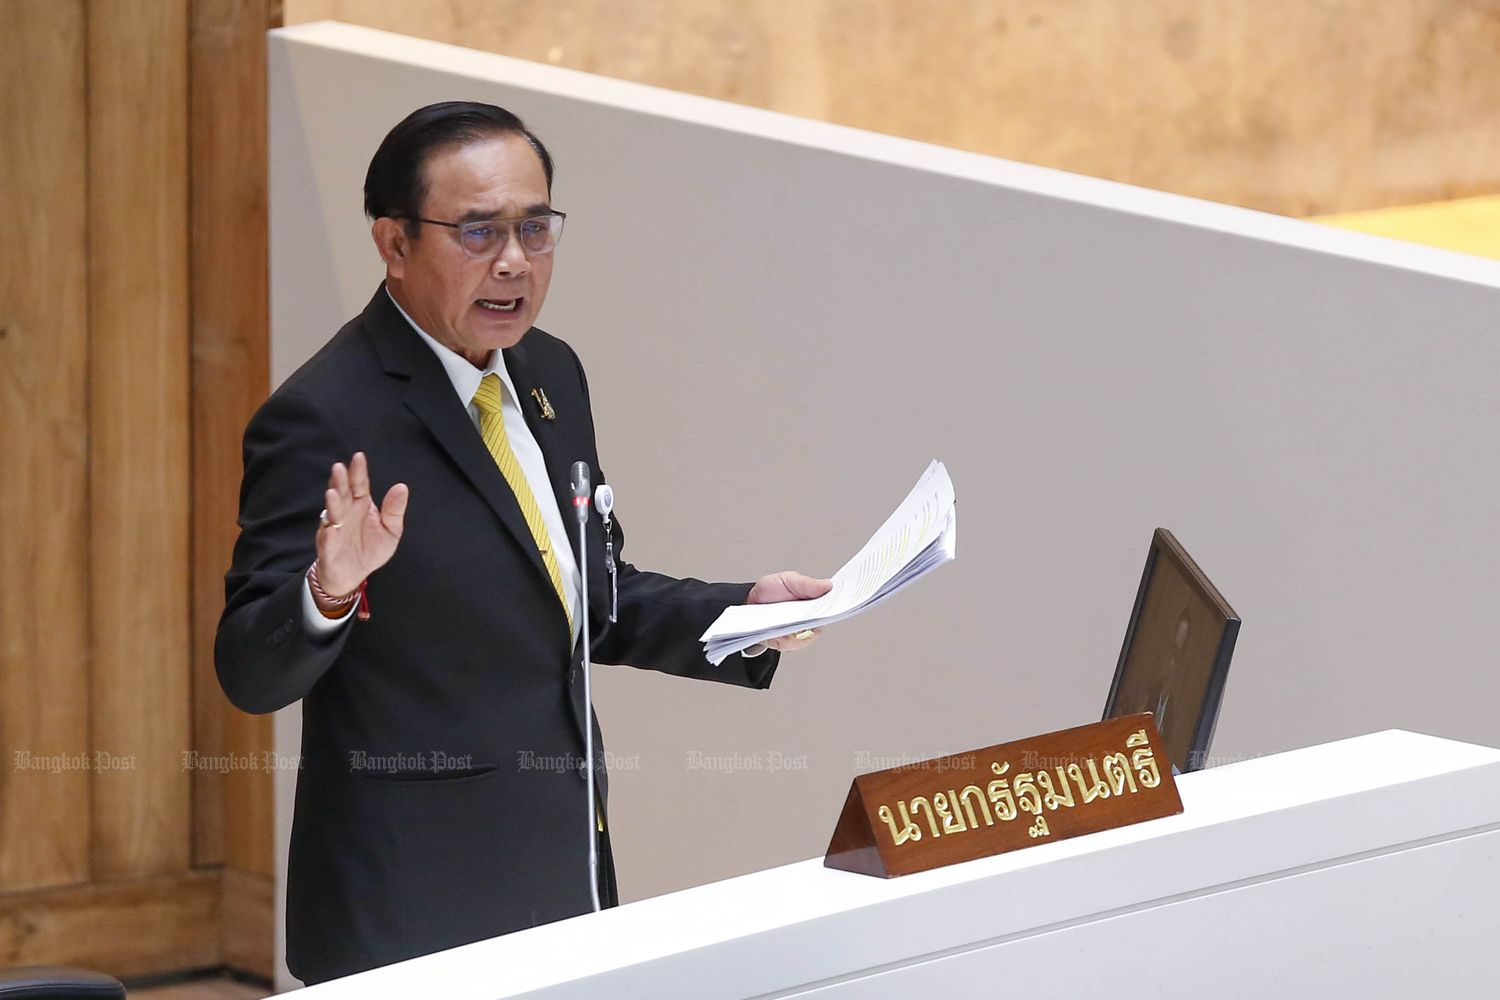 Prime Minister Prayut Chan-o-cha speaks during the debate on first reading of the fiscal 2020 budget bill at Parliament in Bangkok on Saturday. (Photo by Pattarapong Chatpattarasill)